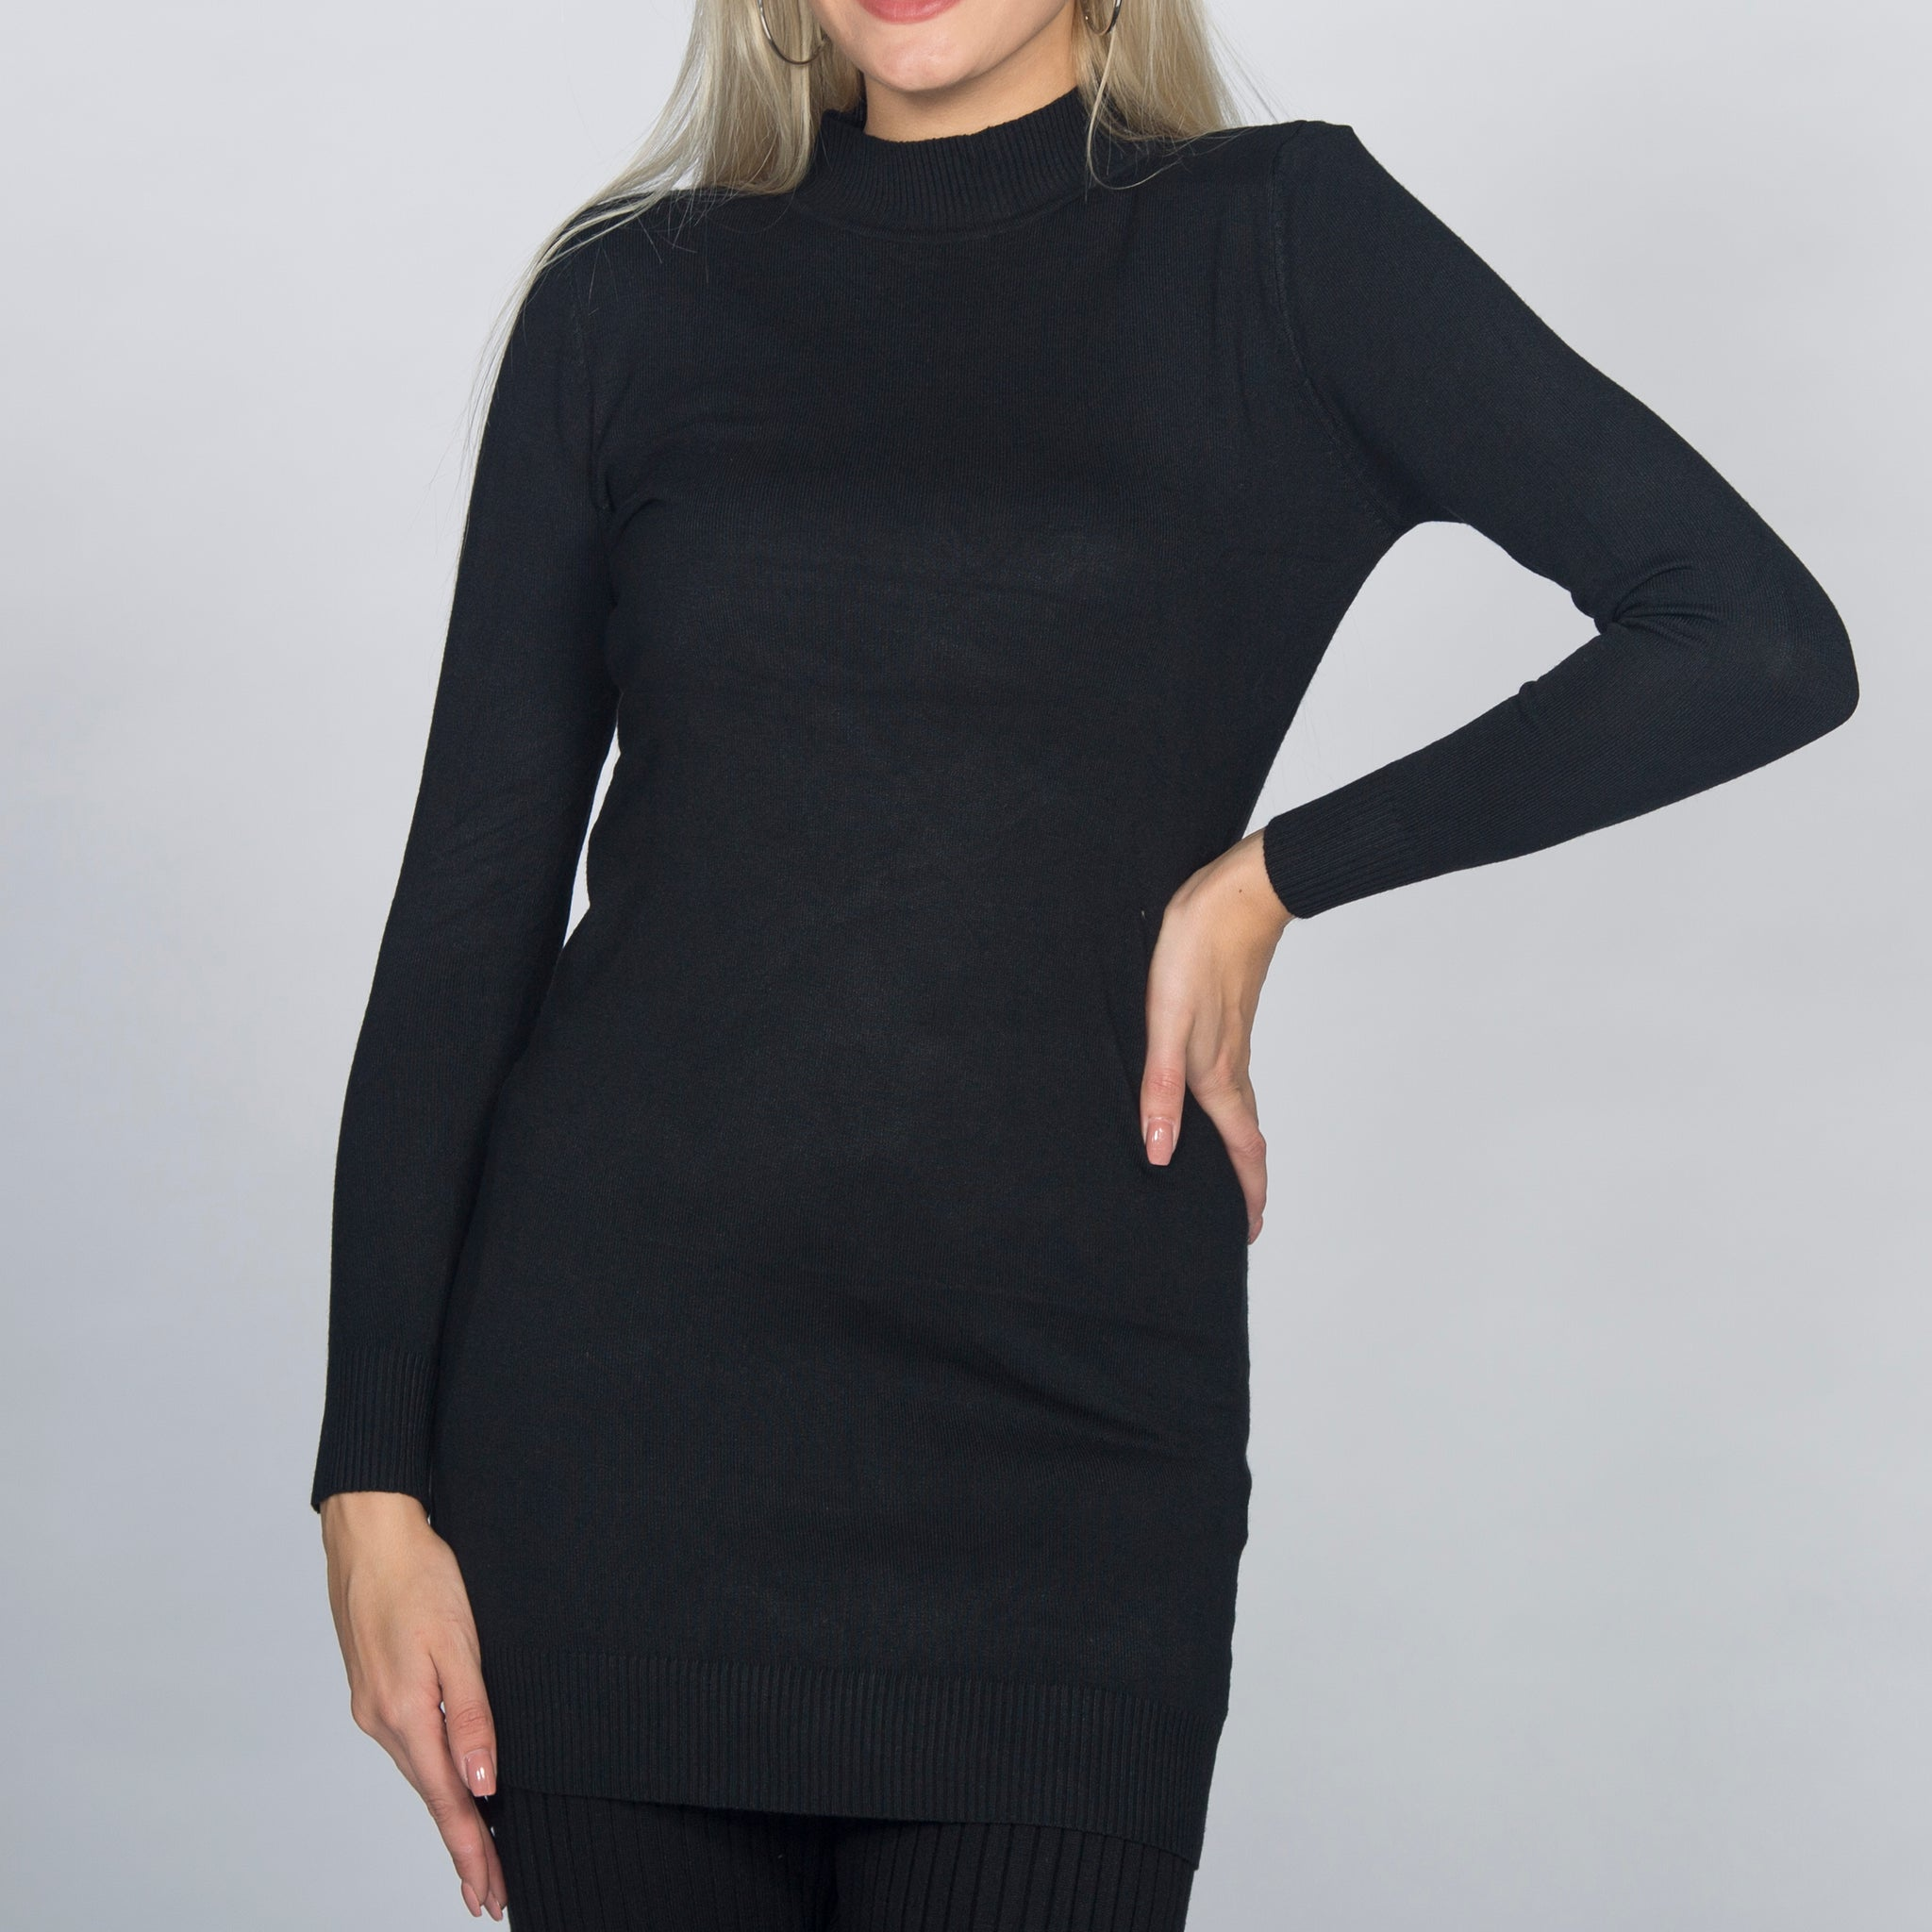 High Neck Long Sleeve Body Dress Top